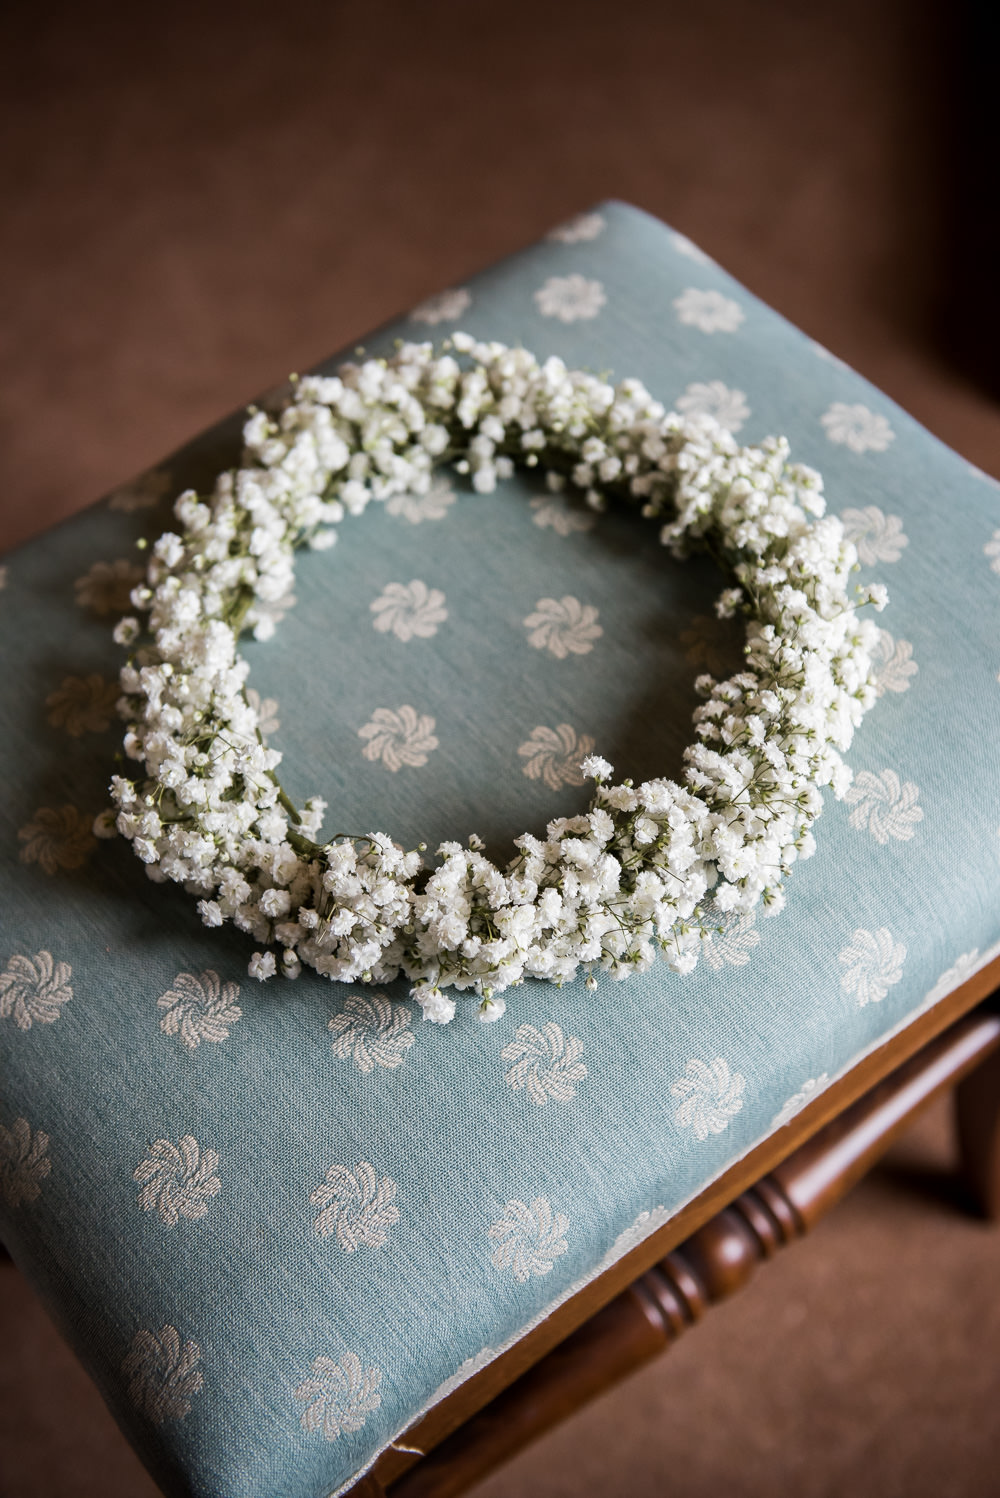 Bride Bridal Gypsophila Crown Flower Floral Inkersall Grange Farm Wedding Jessica Grace Photography